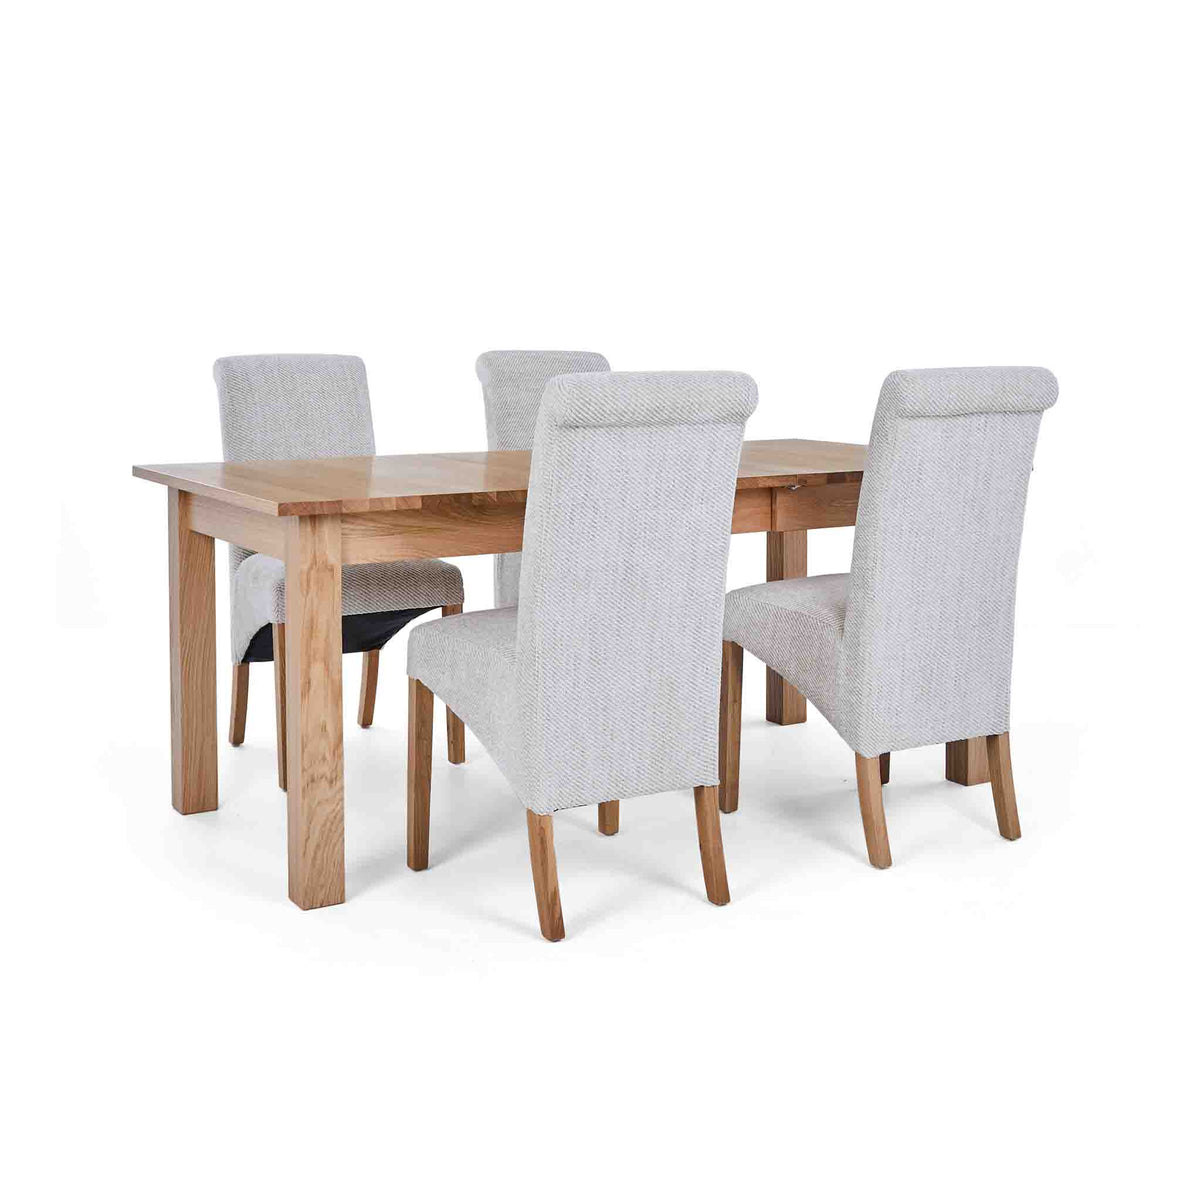 4 Natural Bibury Chairs with the Falmouth Oak Large Extending Dining Table